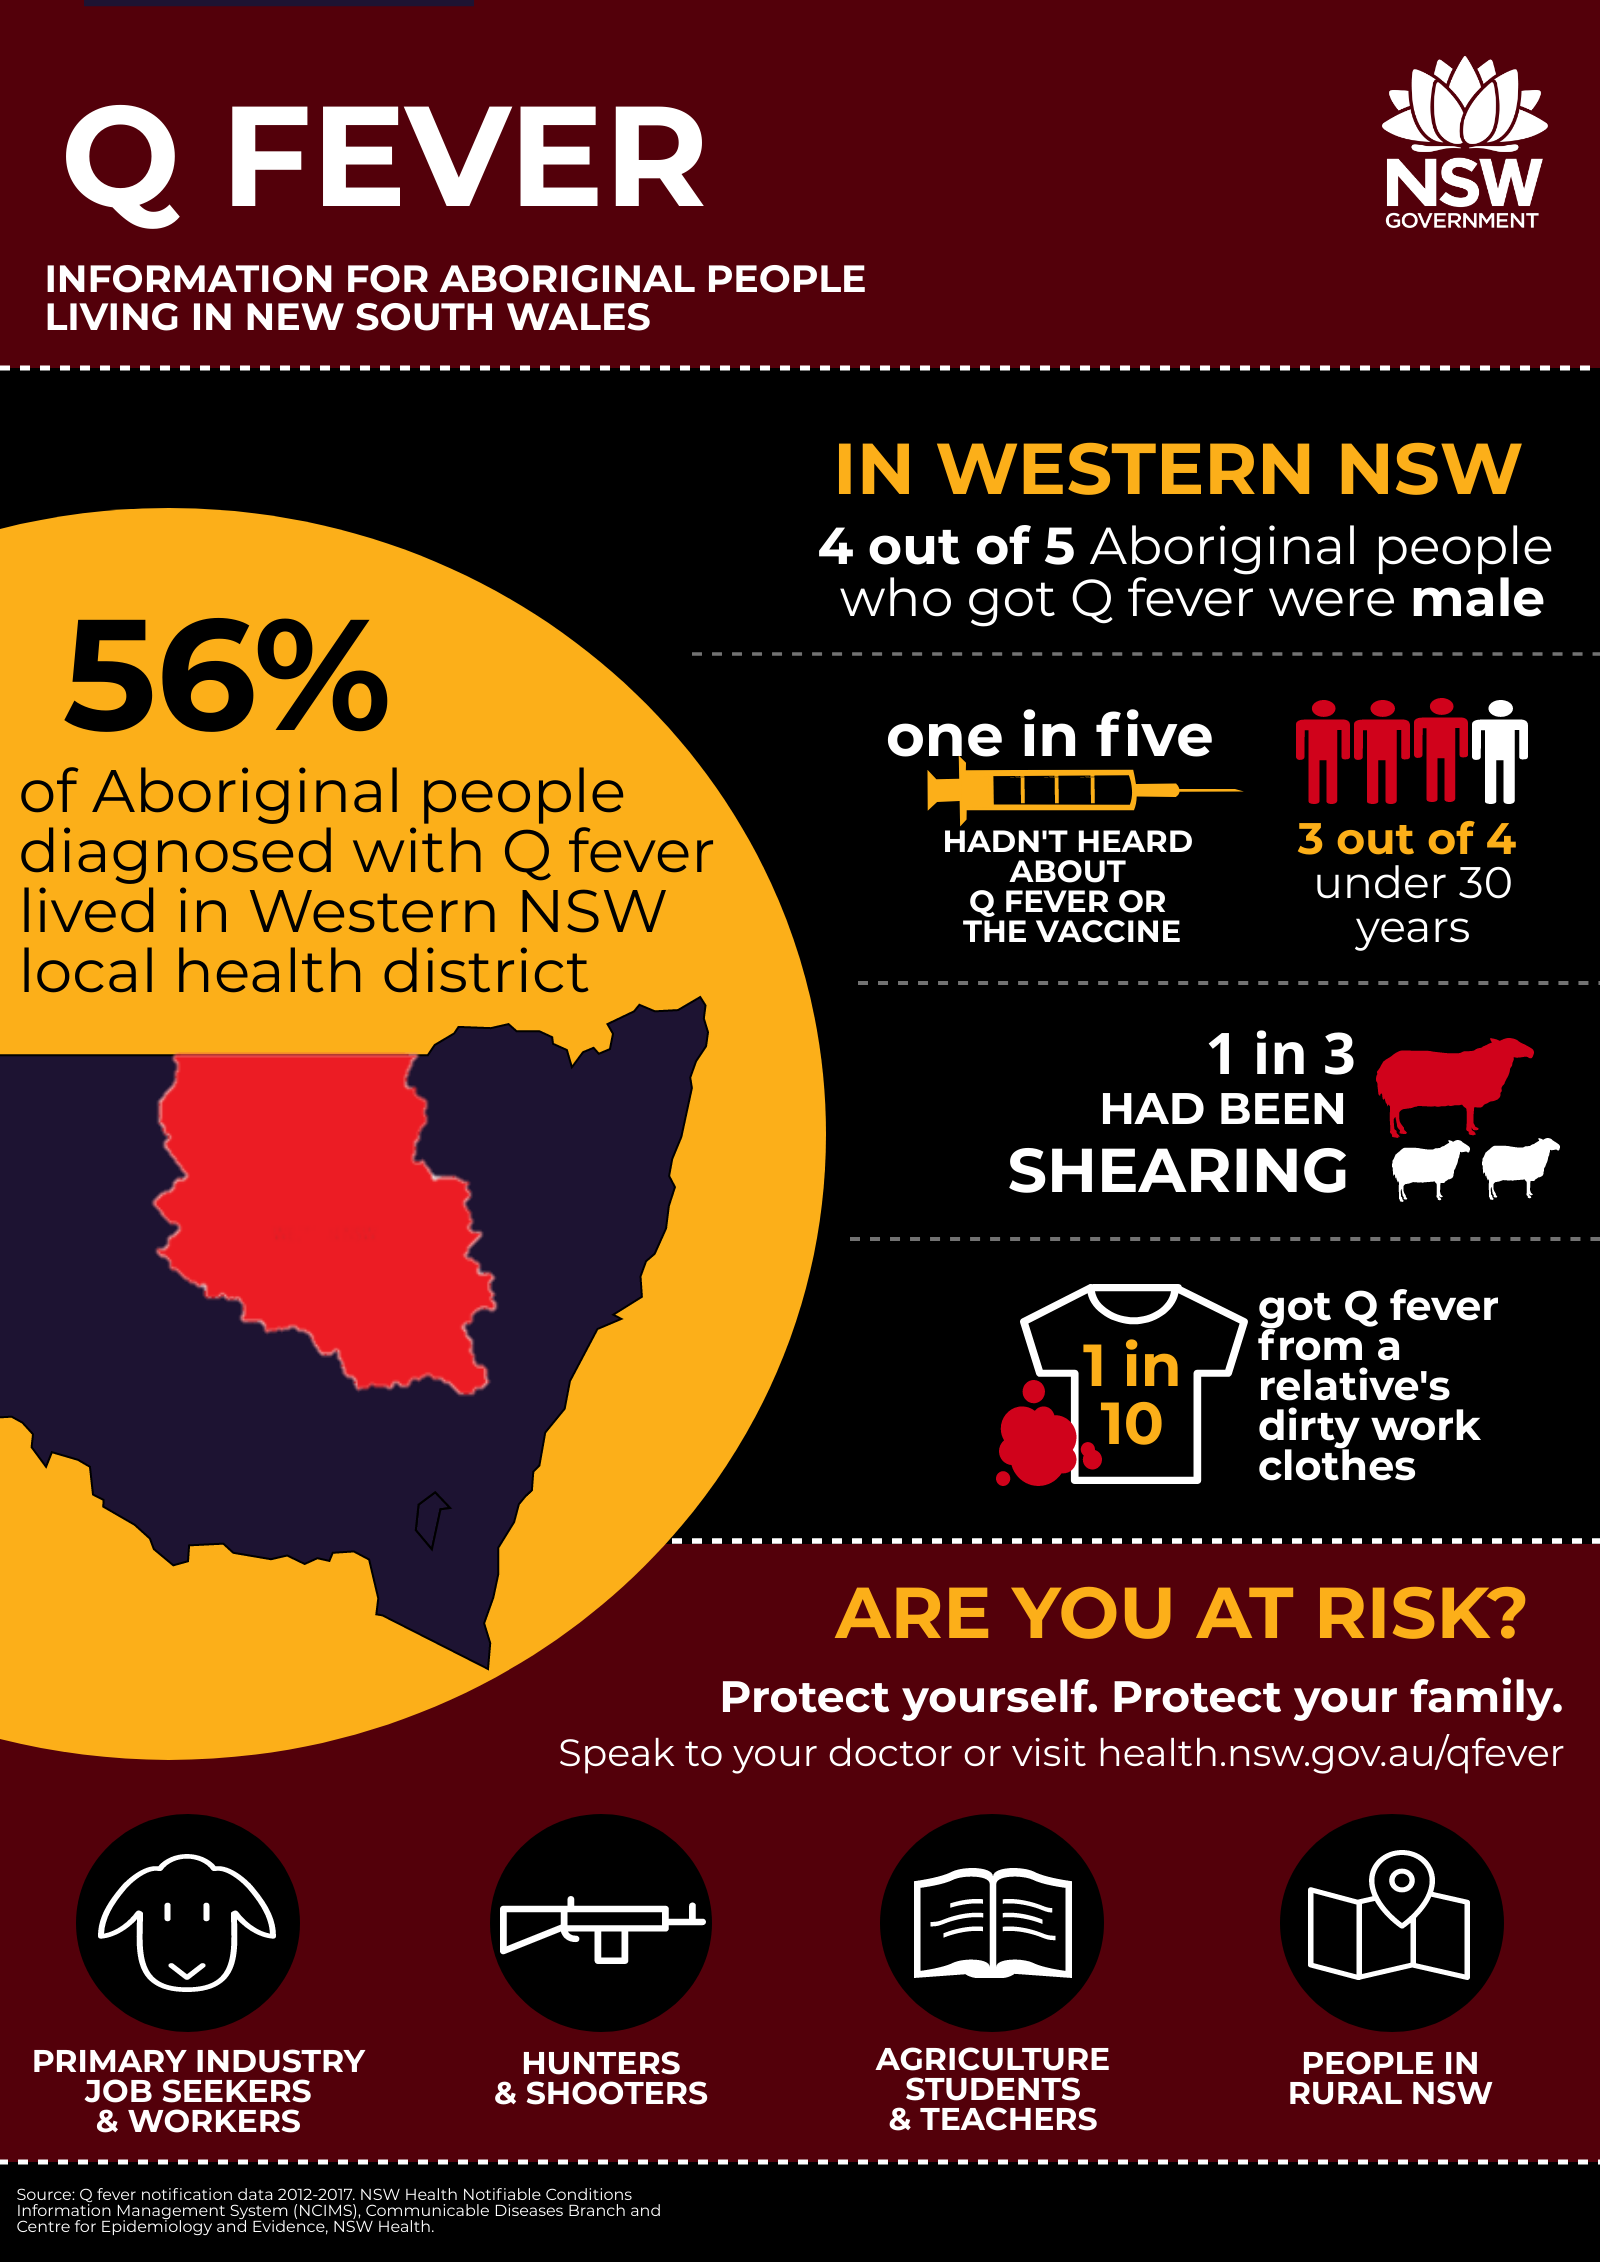 Q Fever - Information for Aboriginal people living in NSW. 56 percent of Aboriginal people diagnosed with Q fever lived in Western NSW Local Health District. In Western NSW 4 out of 5 Aboriginal people who got Q fever were male. One in five hadn't heard about Q fever vaccine. 3 out of 4 were under 30 years. 1 in 3 had been shearing. 1 in 10 got Q fever from a relative's dirty work clothes. Are you at risk? Protect yourself. Protect your family. Speak to your doctor. Especially primary industry job seekers and workers, hunters and shooters, agriculture students and teachers and people in rural NSW.